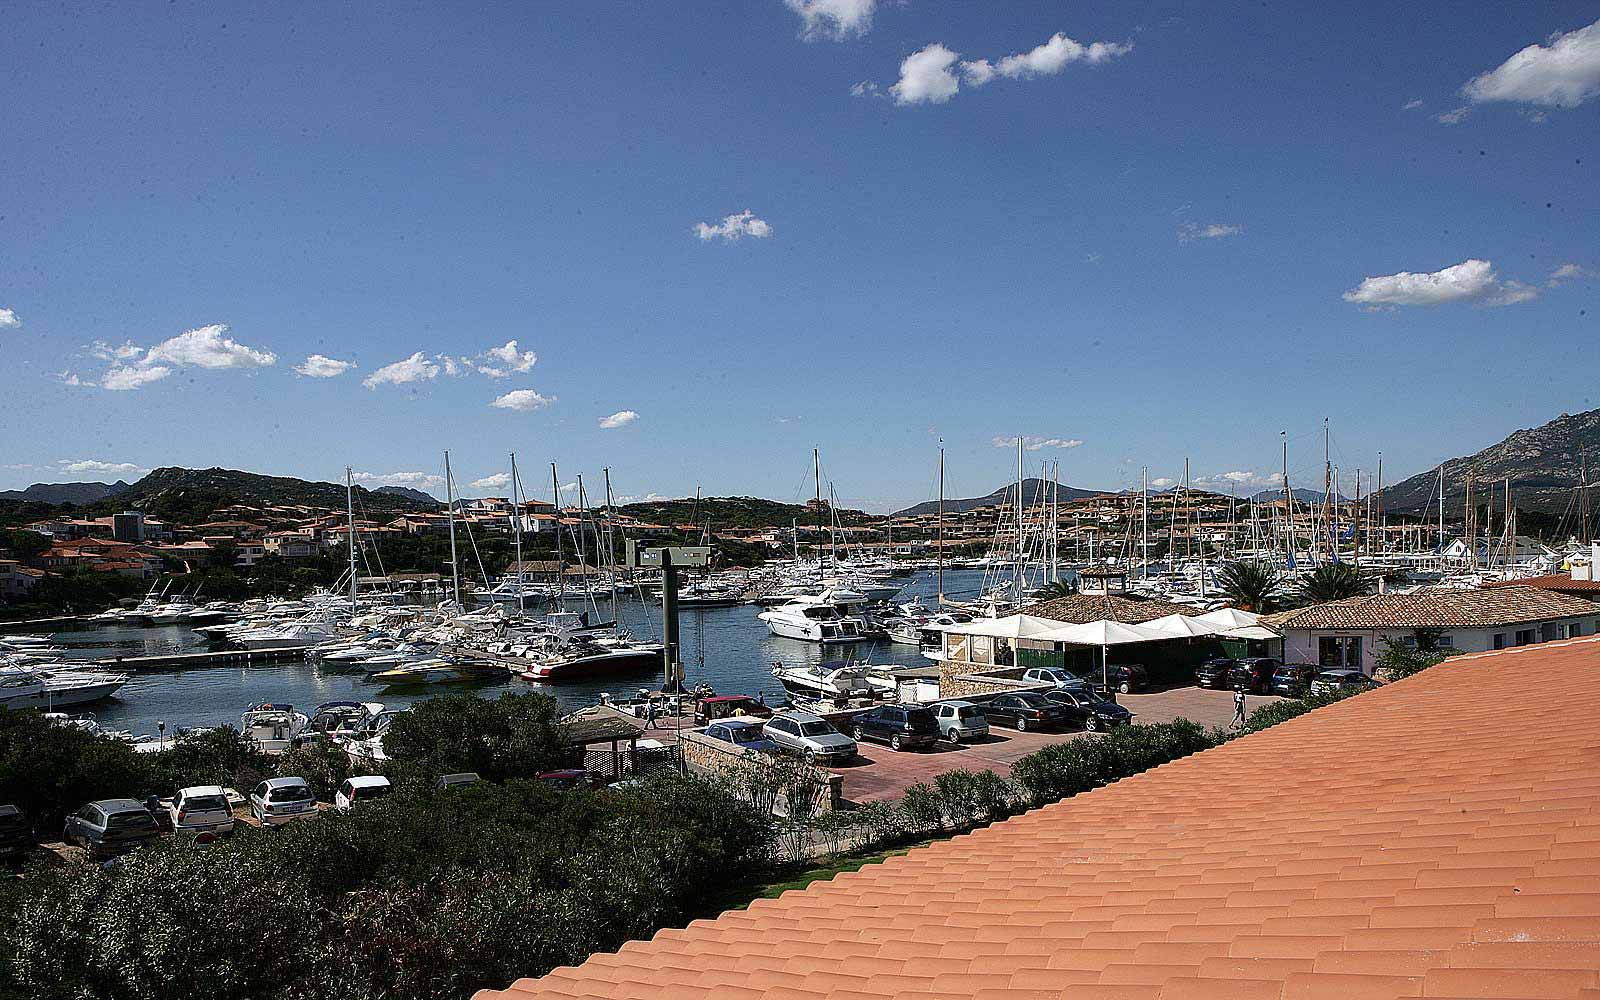 Porto Rotondo next to Hotel Sporting